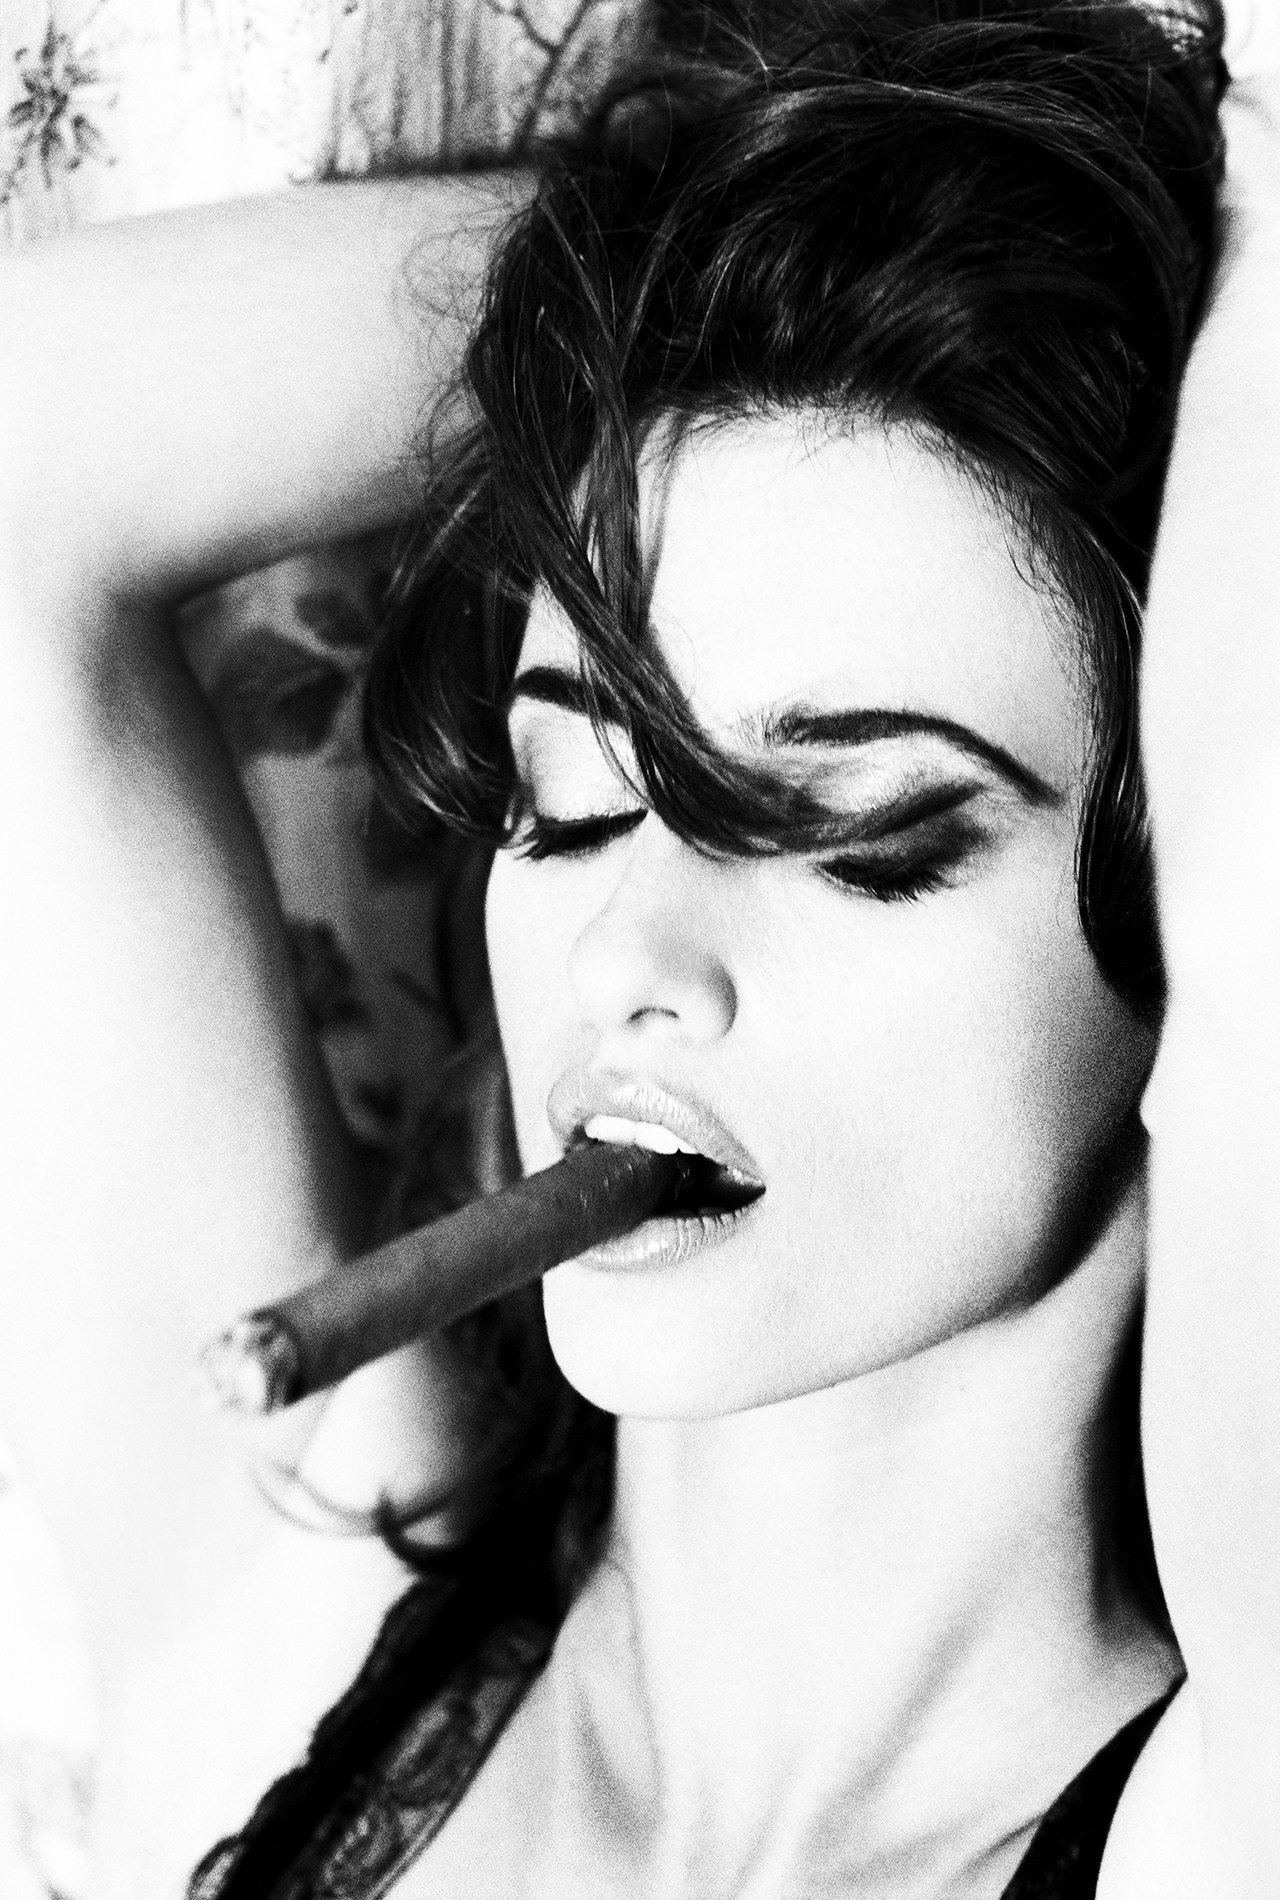 penelope cruz smoking a cigar